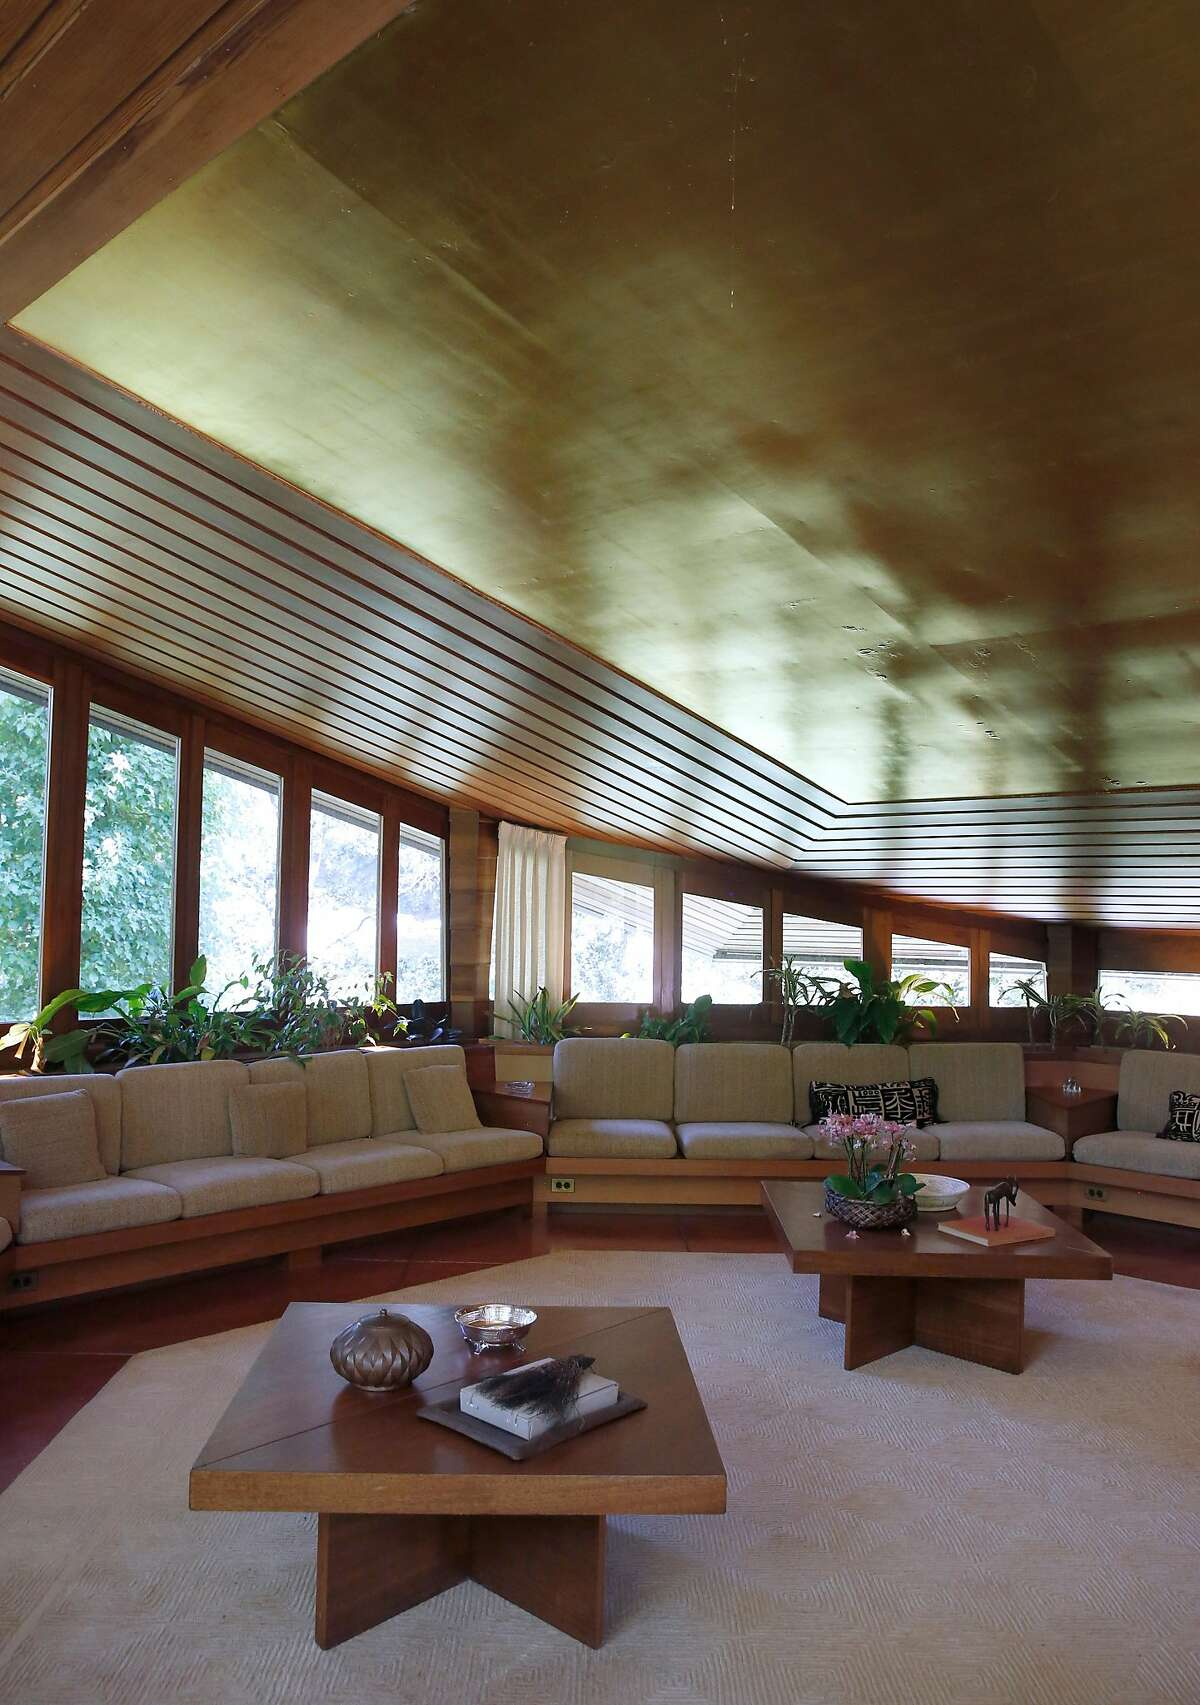 The octagonal living room of the Maynard Buehler House, designed by Frank Lloyd Wright, in Orinda, Calif. on Friday, July 19, 2019. The Usonian house designed by the legendary American architect is among the homes available to tour through the Frank Lloyd Wright Revival Initiative.